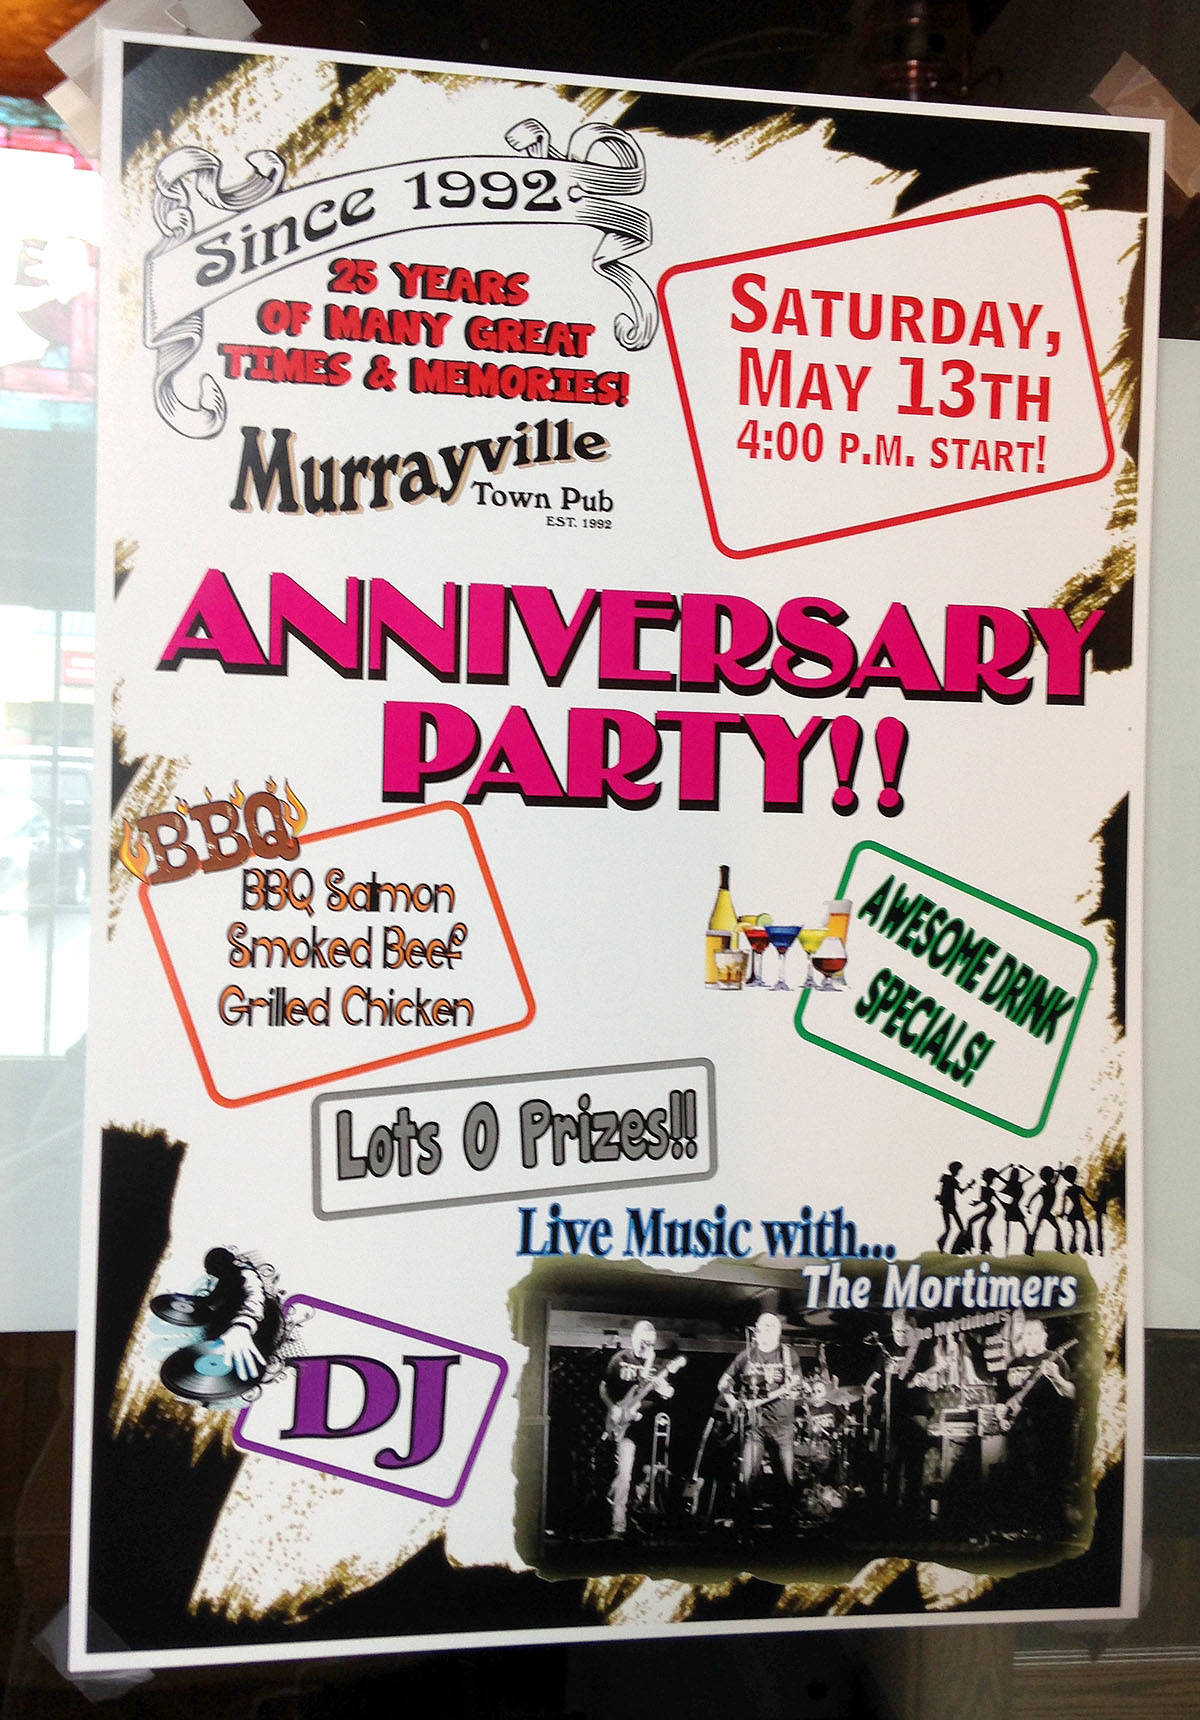 Murrayville Town Pub turned 25 this month, and owners are hosting an anniversary party this Saturday.